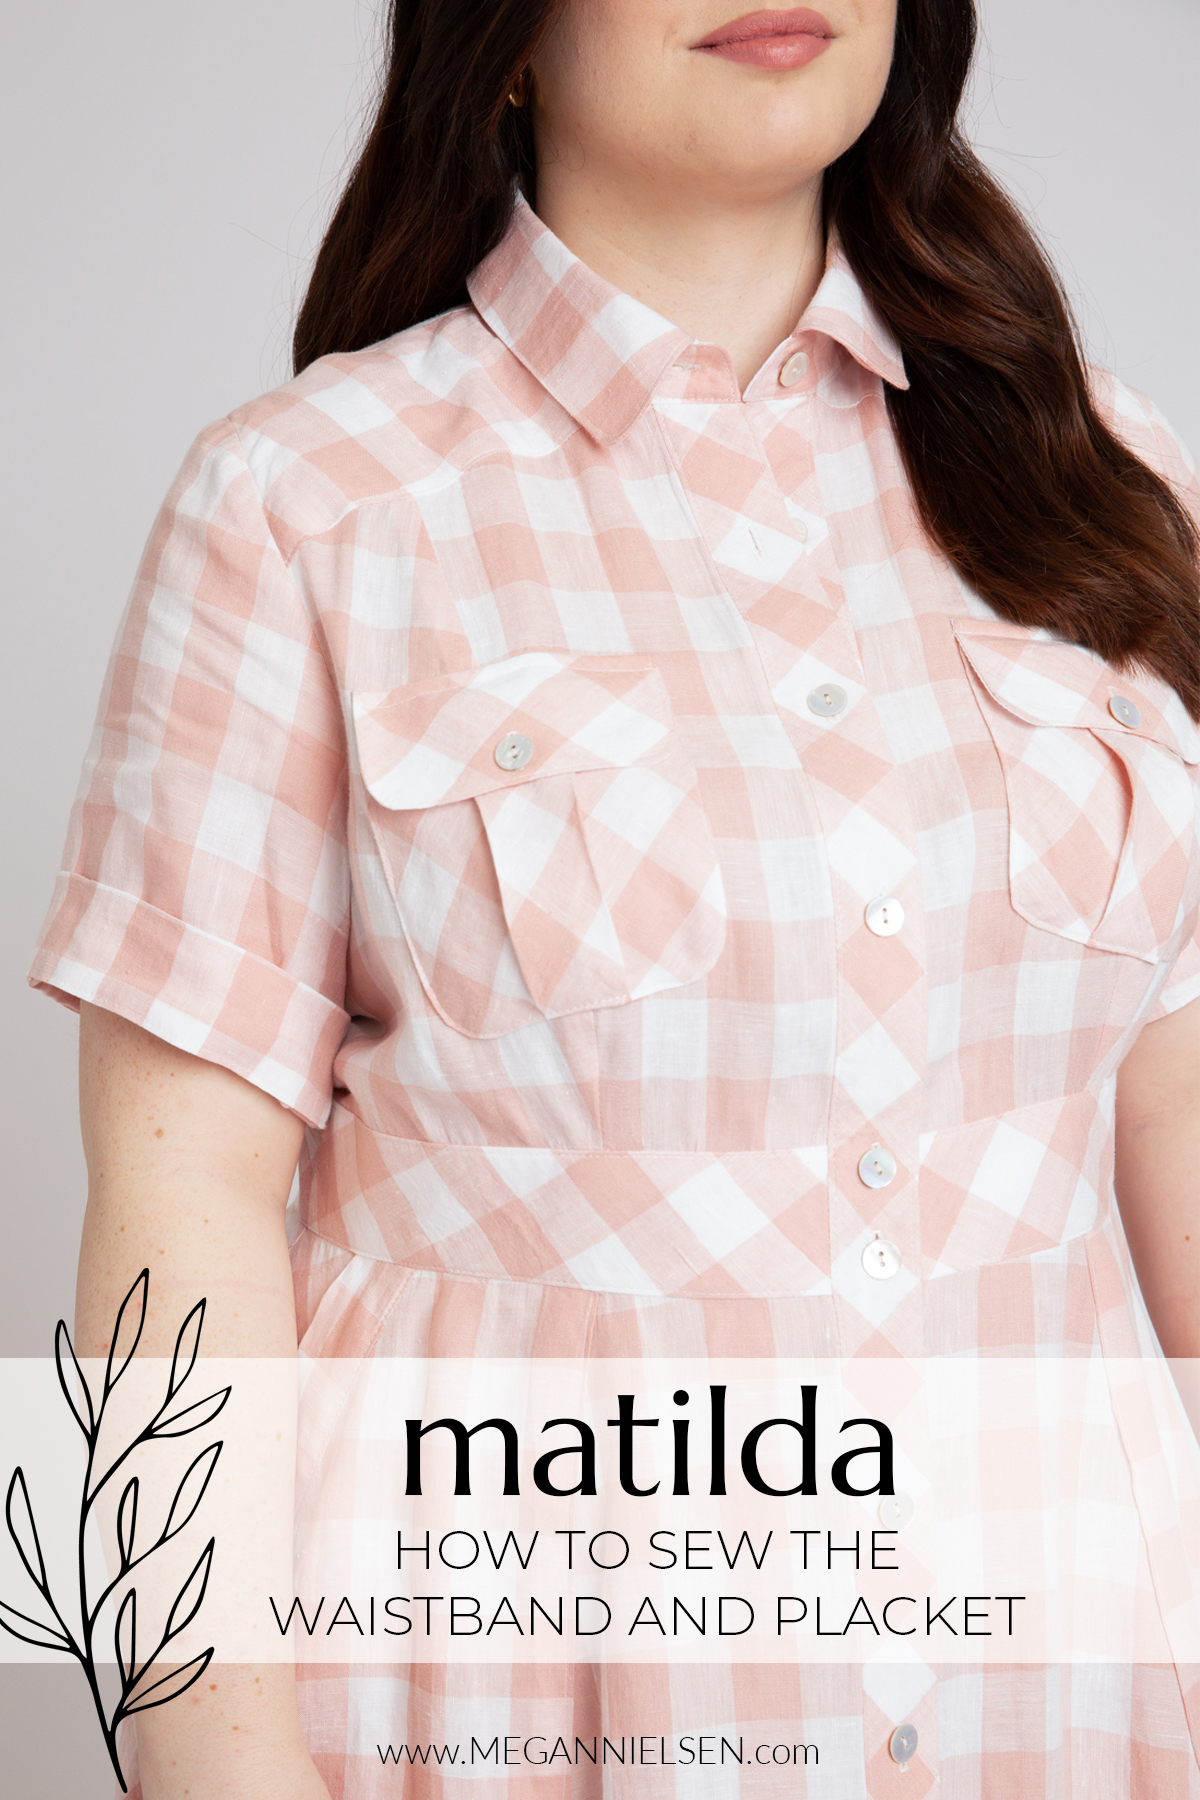 Matilda - How to sew the waistband and placket